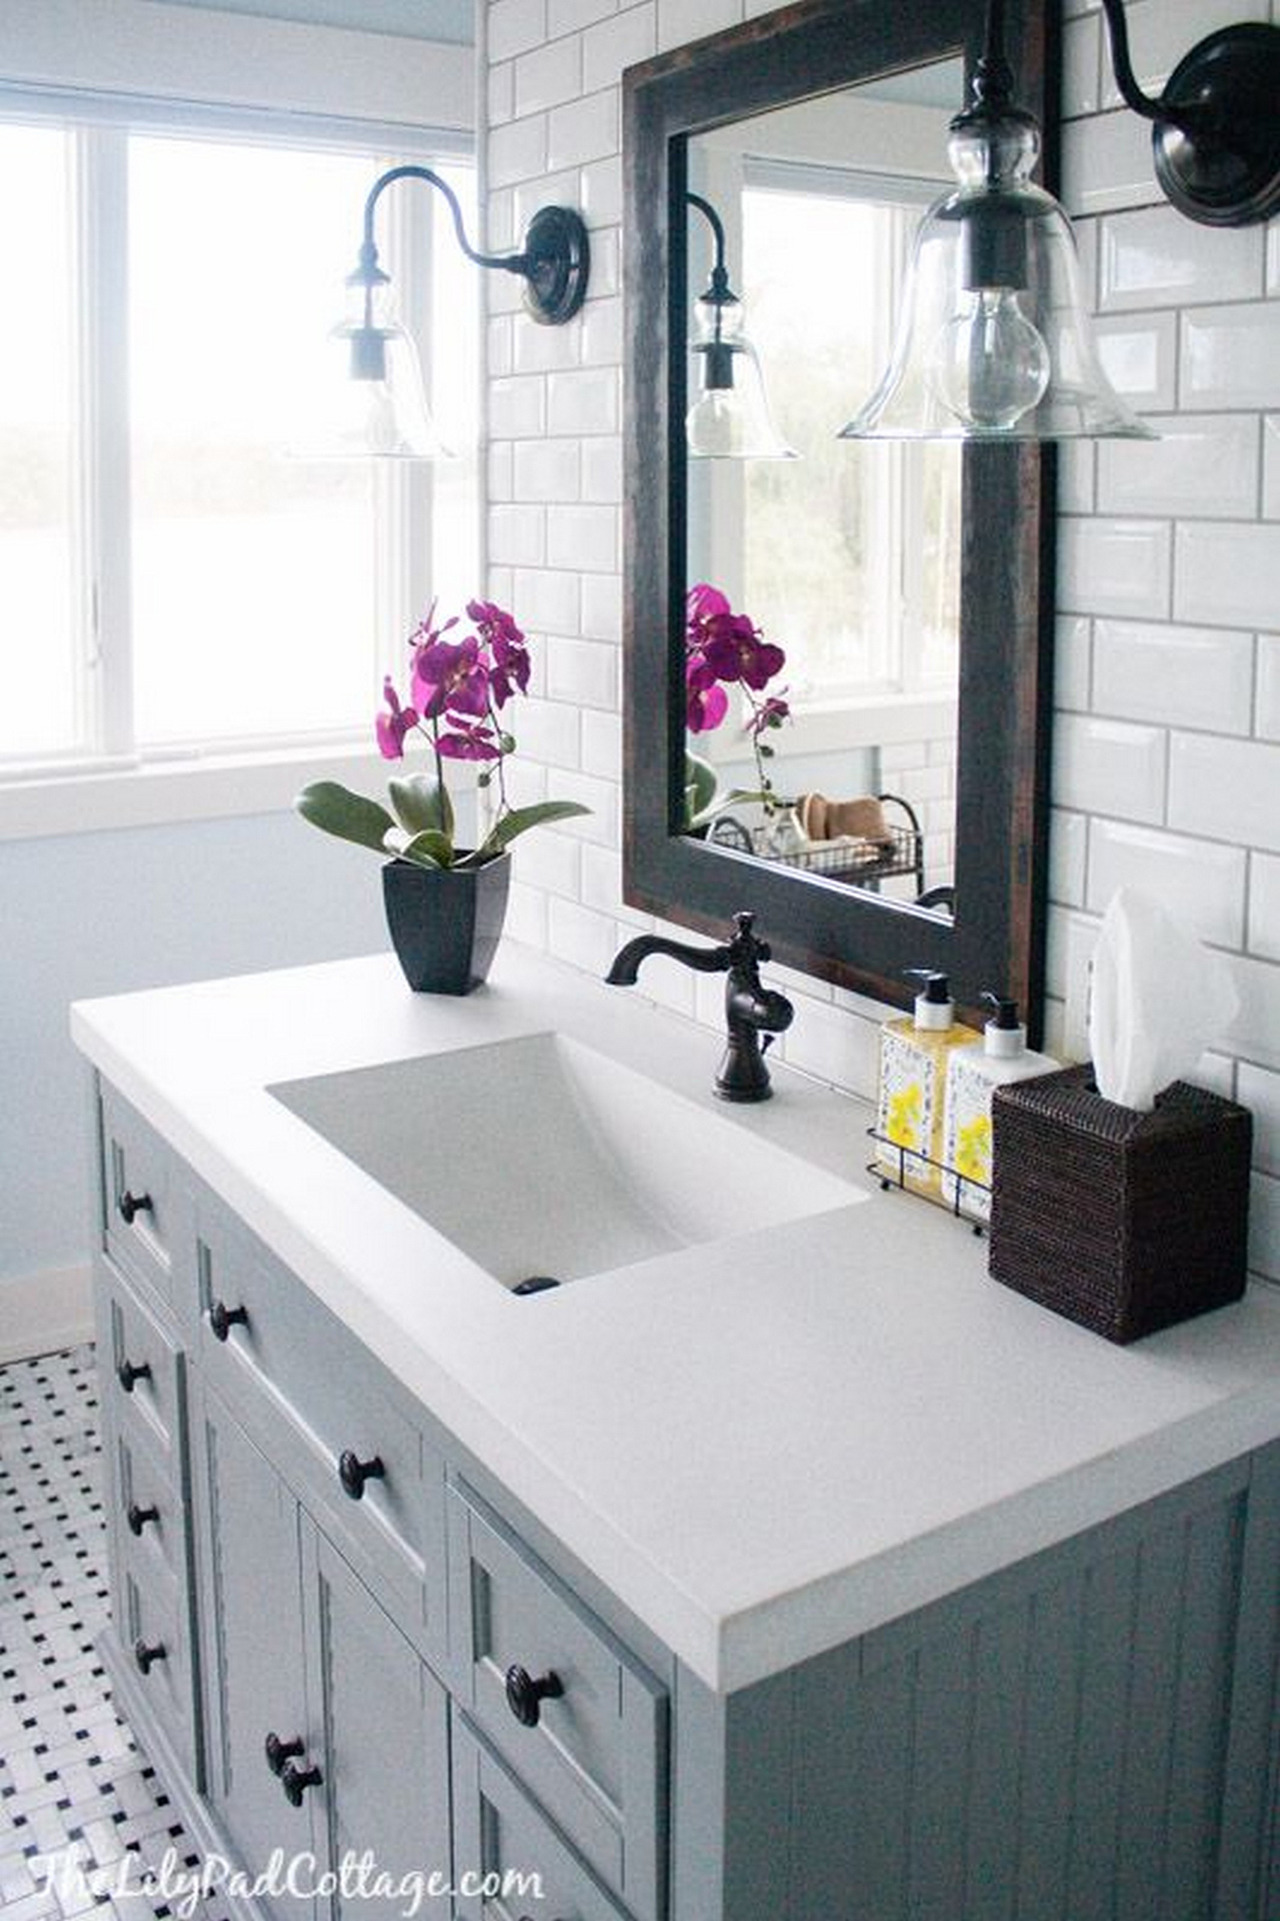 Bathroom Decors Beautiful 25 Best Bathroom Decor Ideas and Designs that are Trendy In 2020